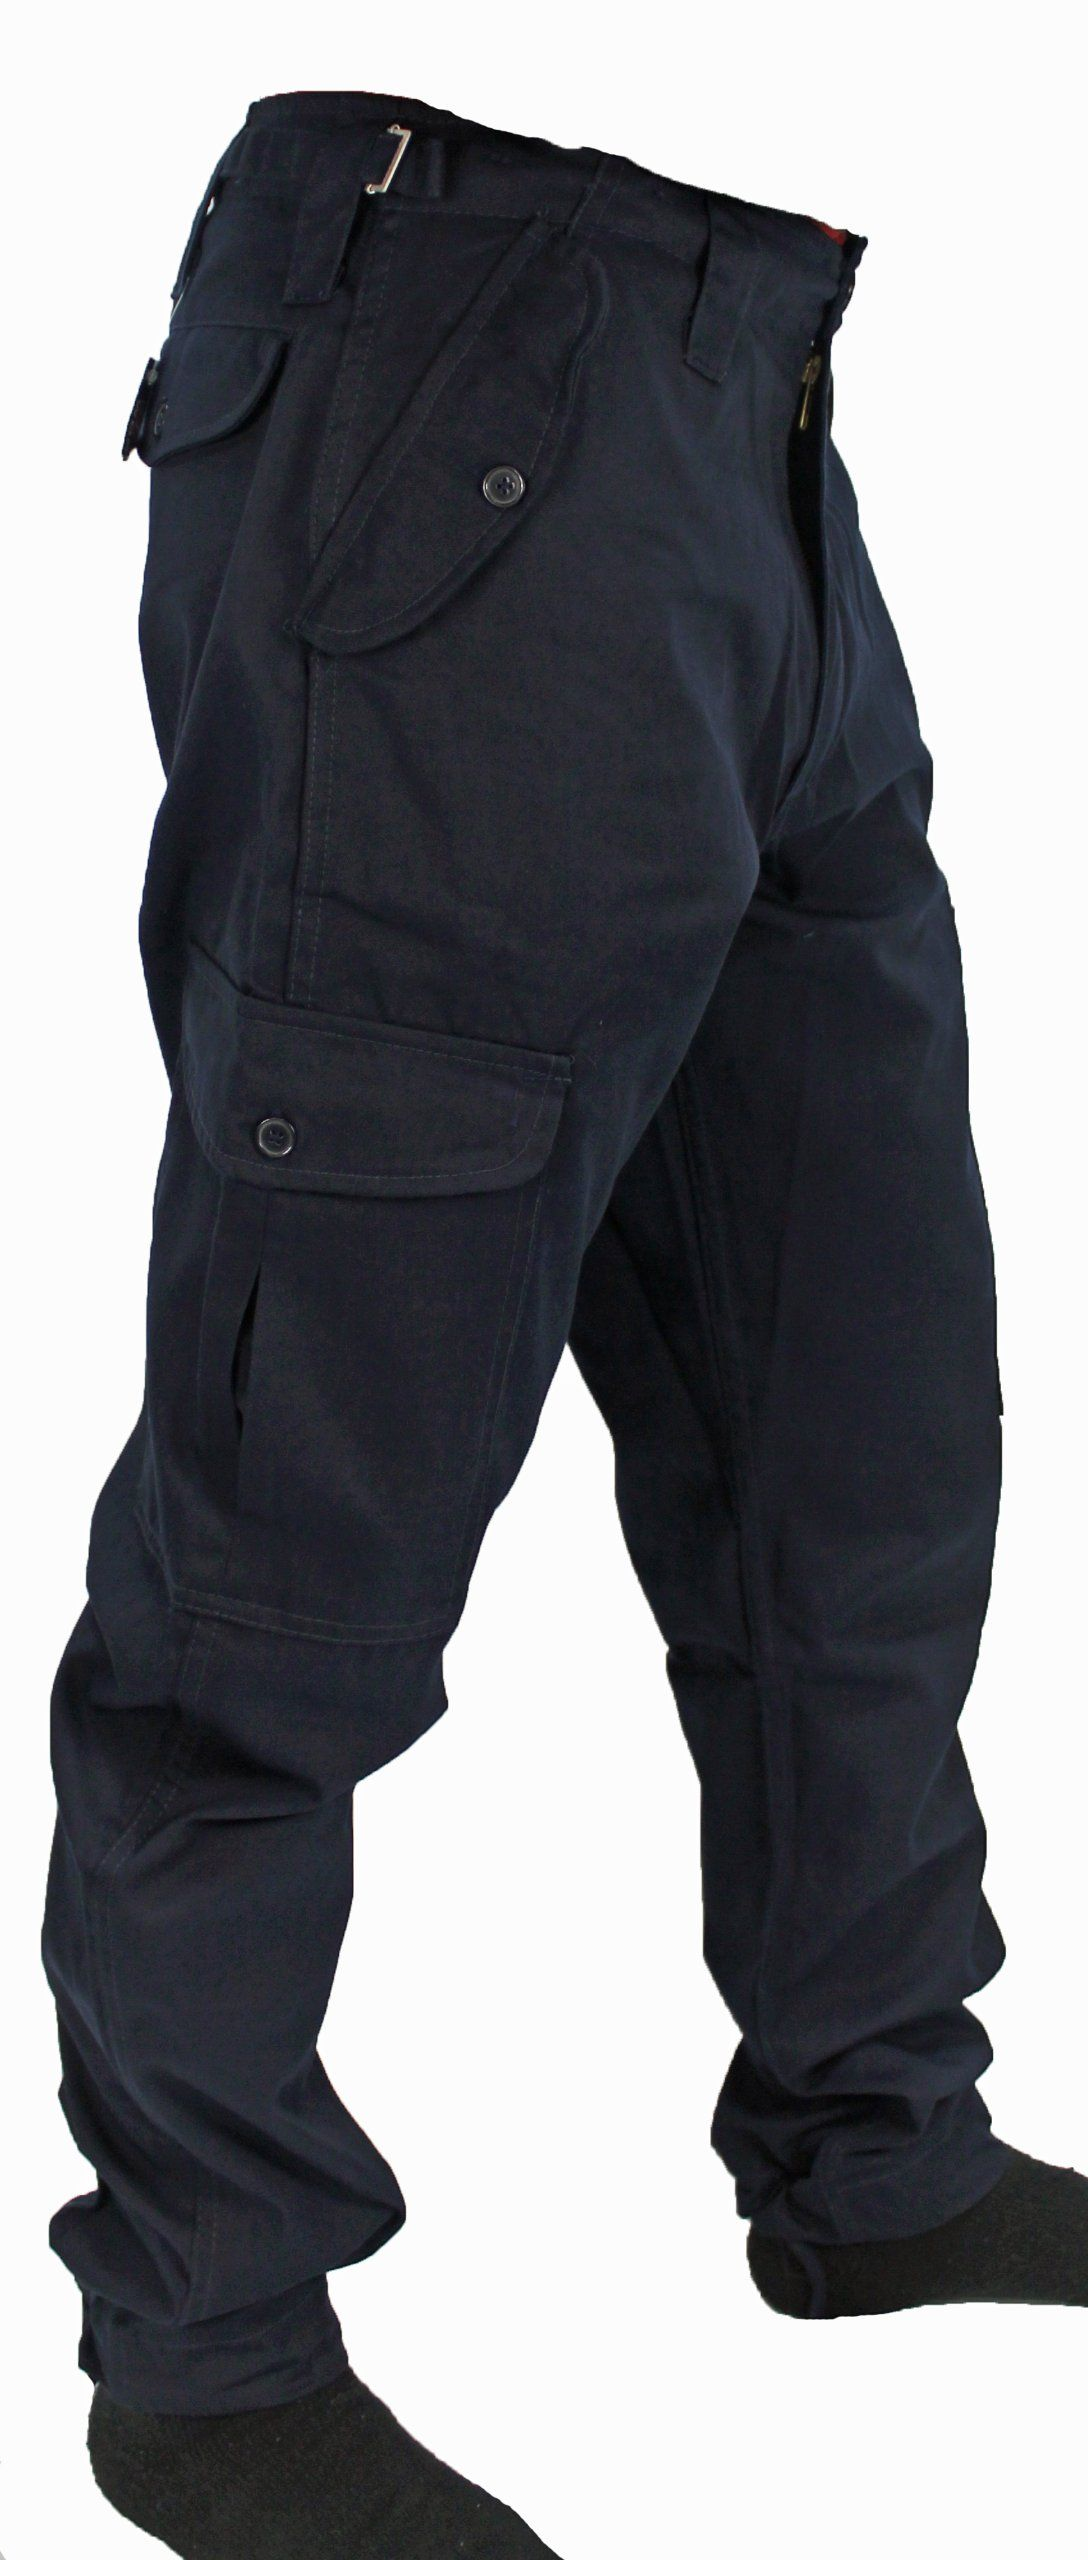 b74373cfdcd4 Picture 3 of 4. Mens Army Combat Work Trousers Pants Combats Cargo by WWK    WorkWear King  Amazon.co.uk  Clothing